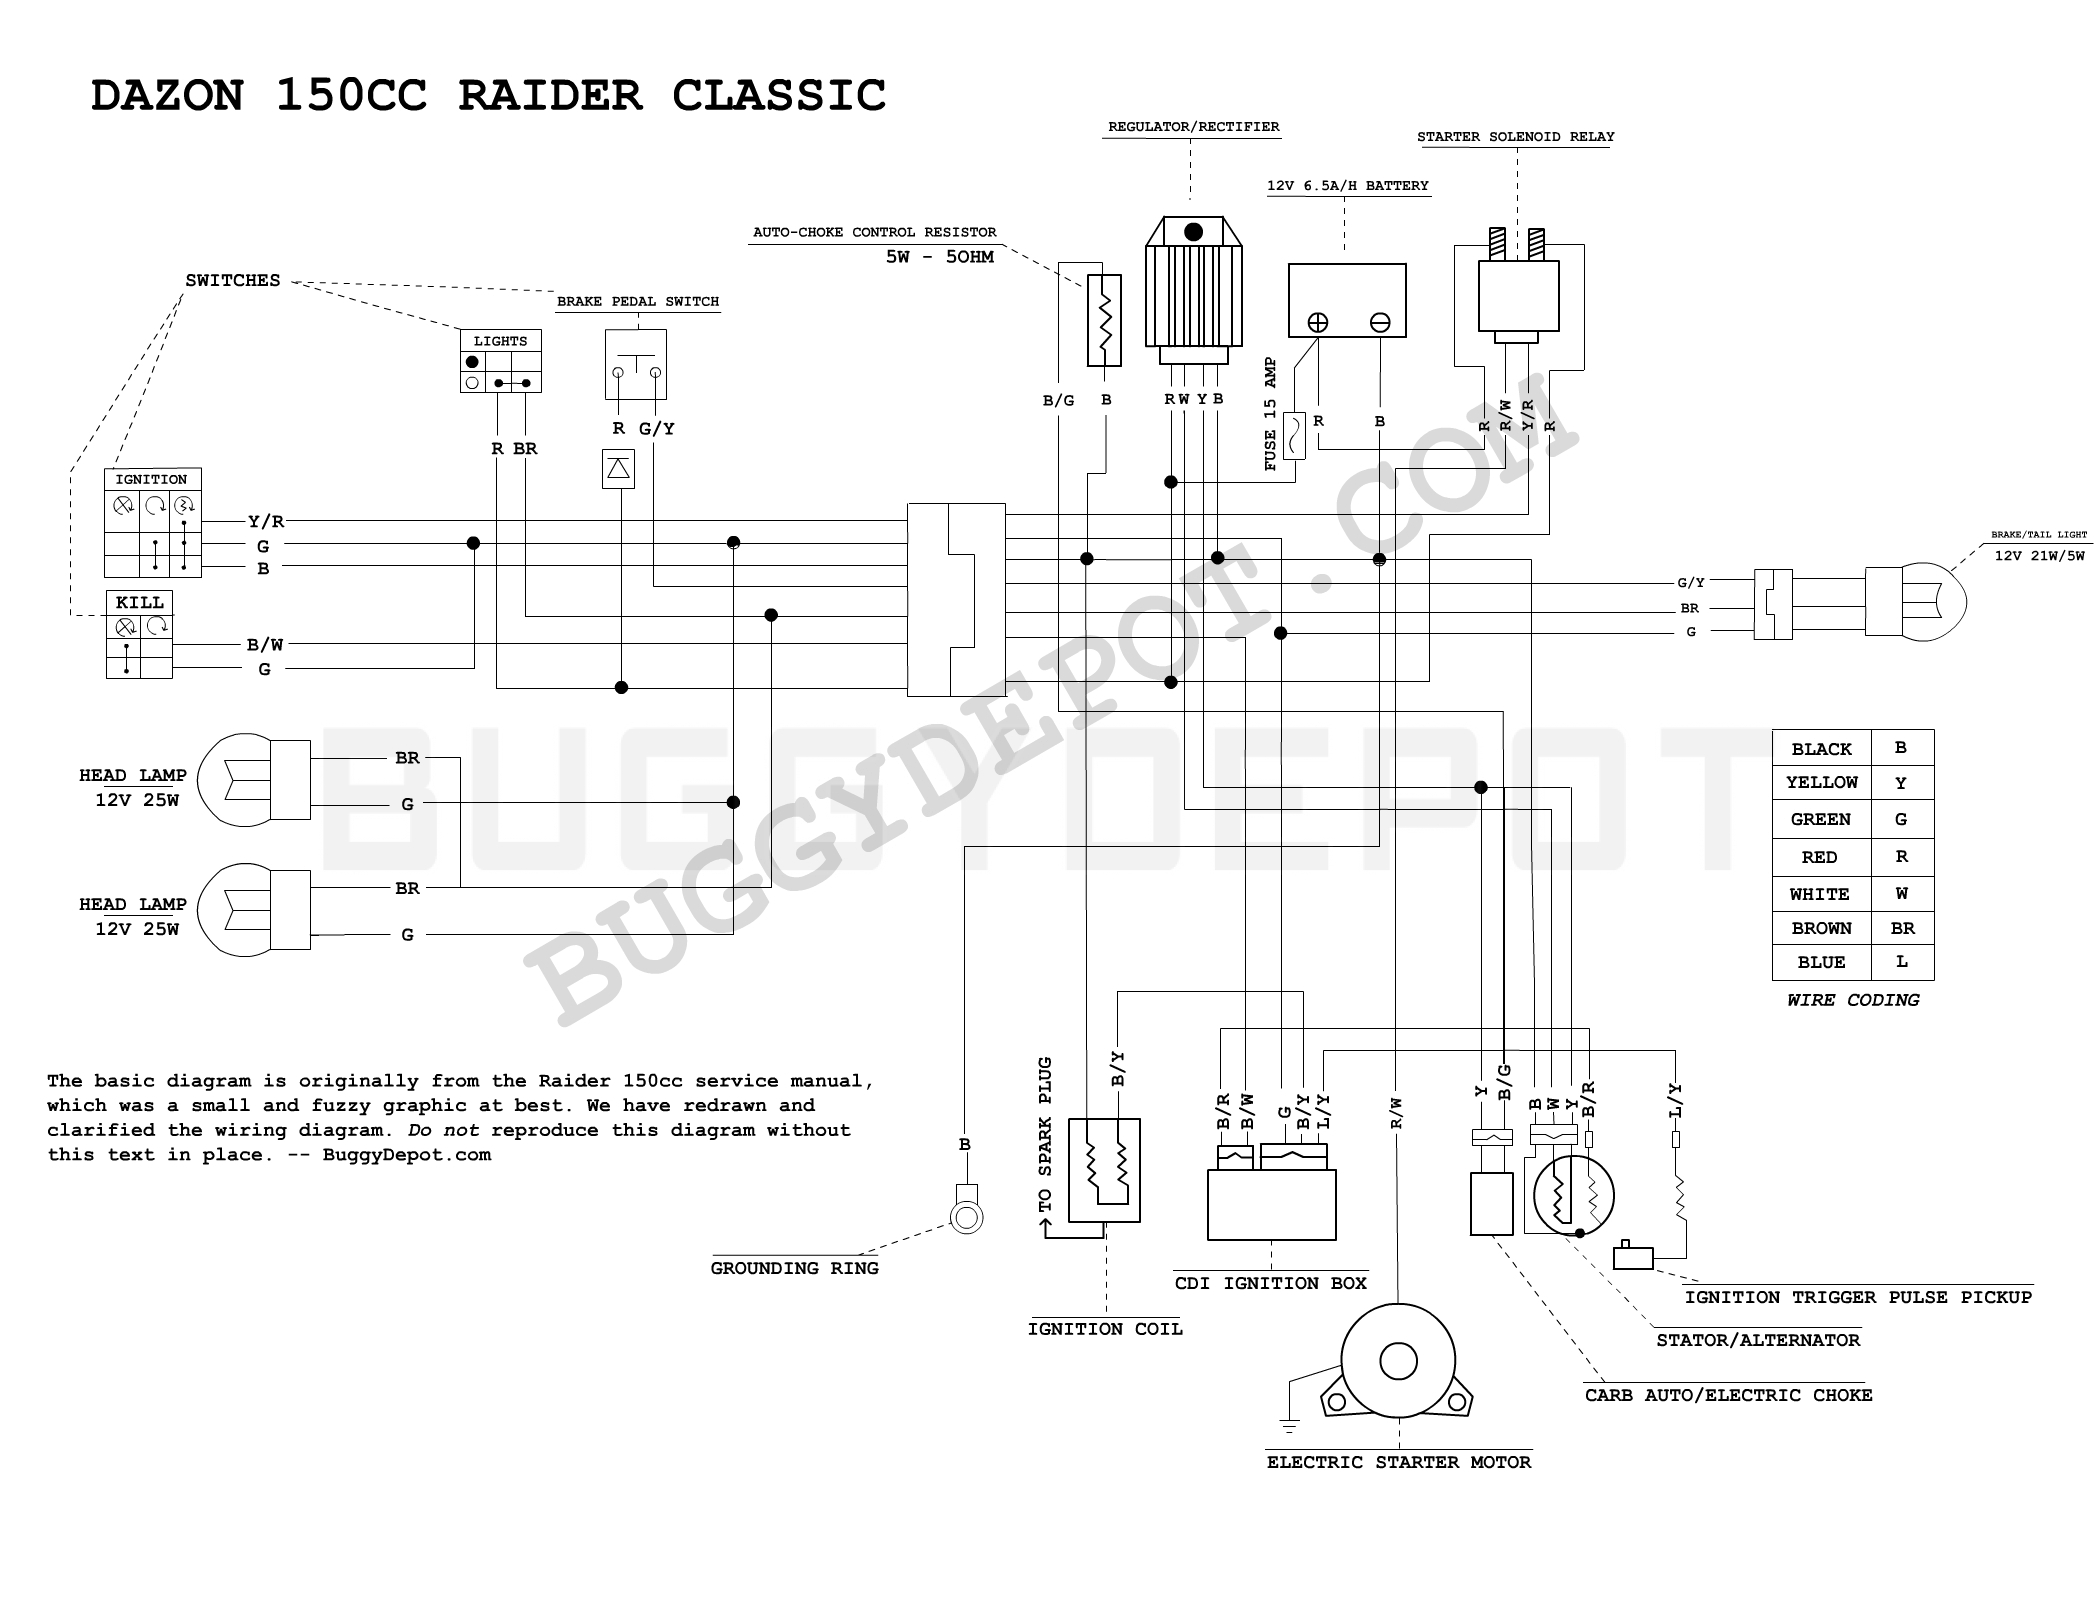 Dazon Raider Classic - Wiring Diagram - Buggy Depot Technical CenterBuggy Depot